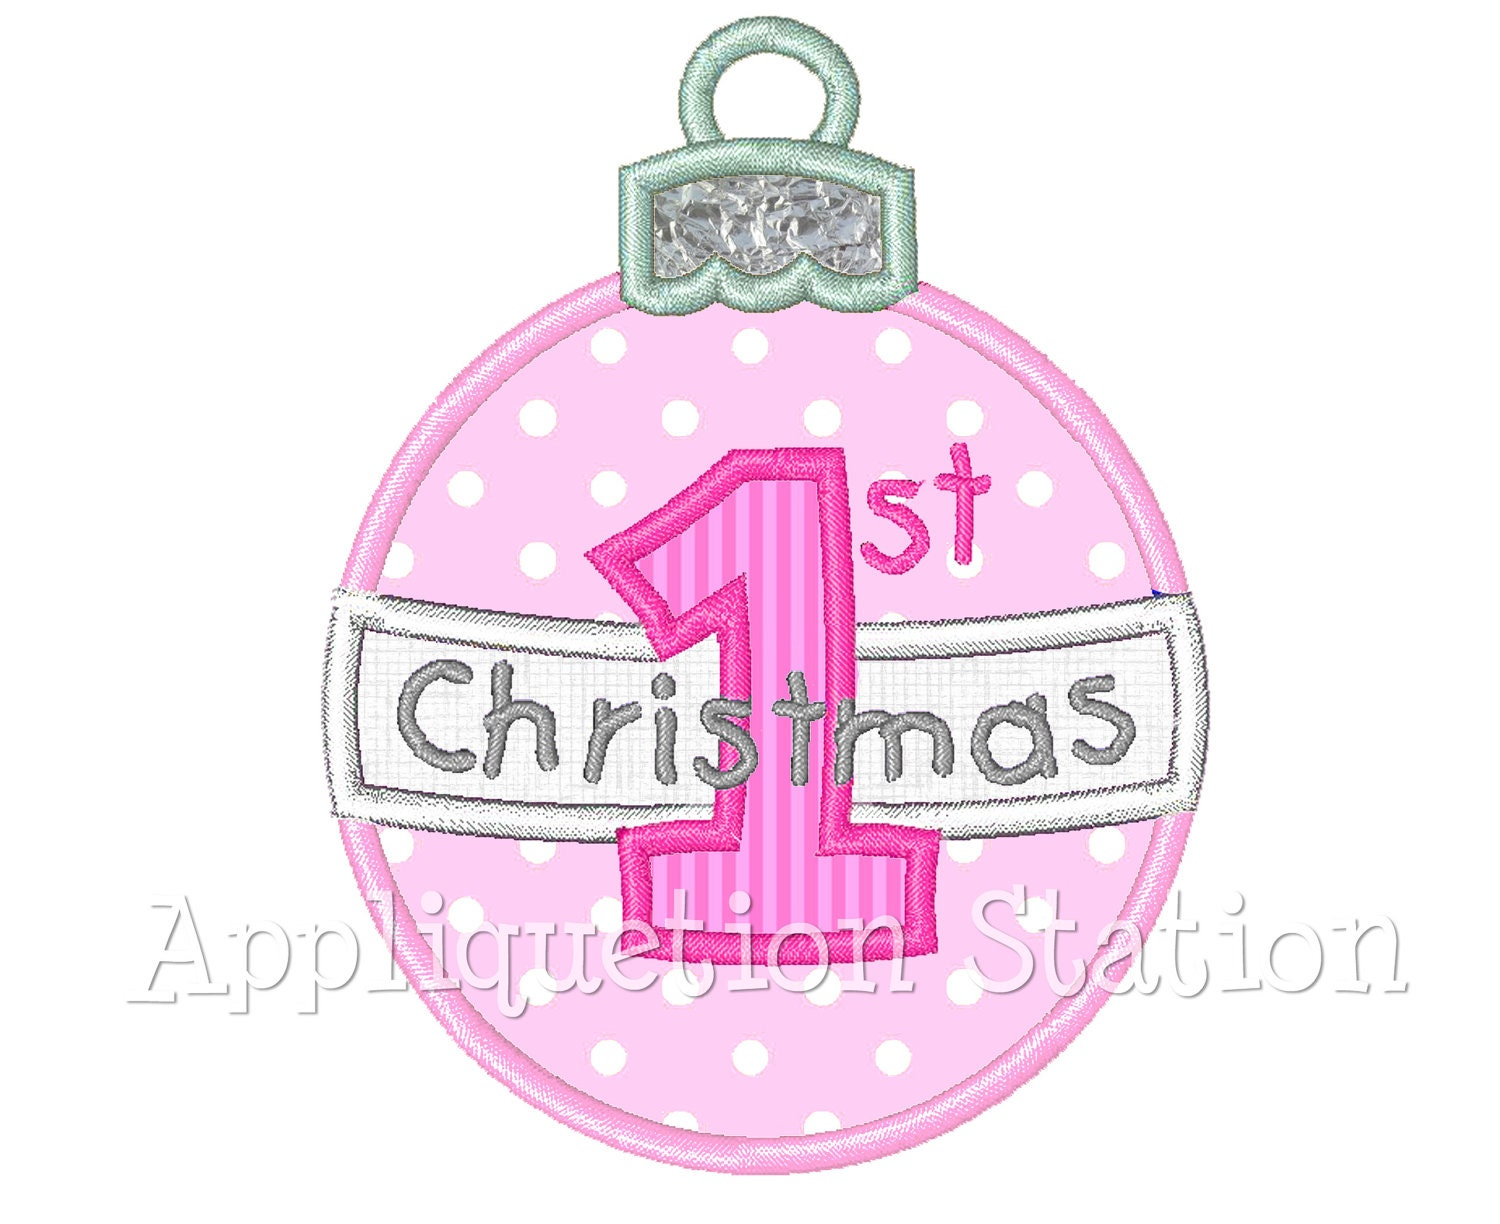 Baby 39 s first christmas ornament round applique machine for How to design a christmas ornament